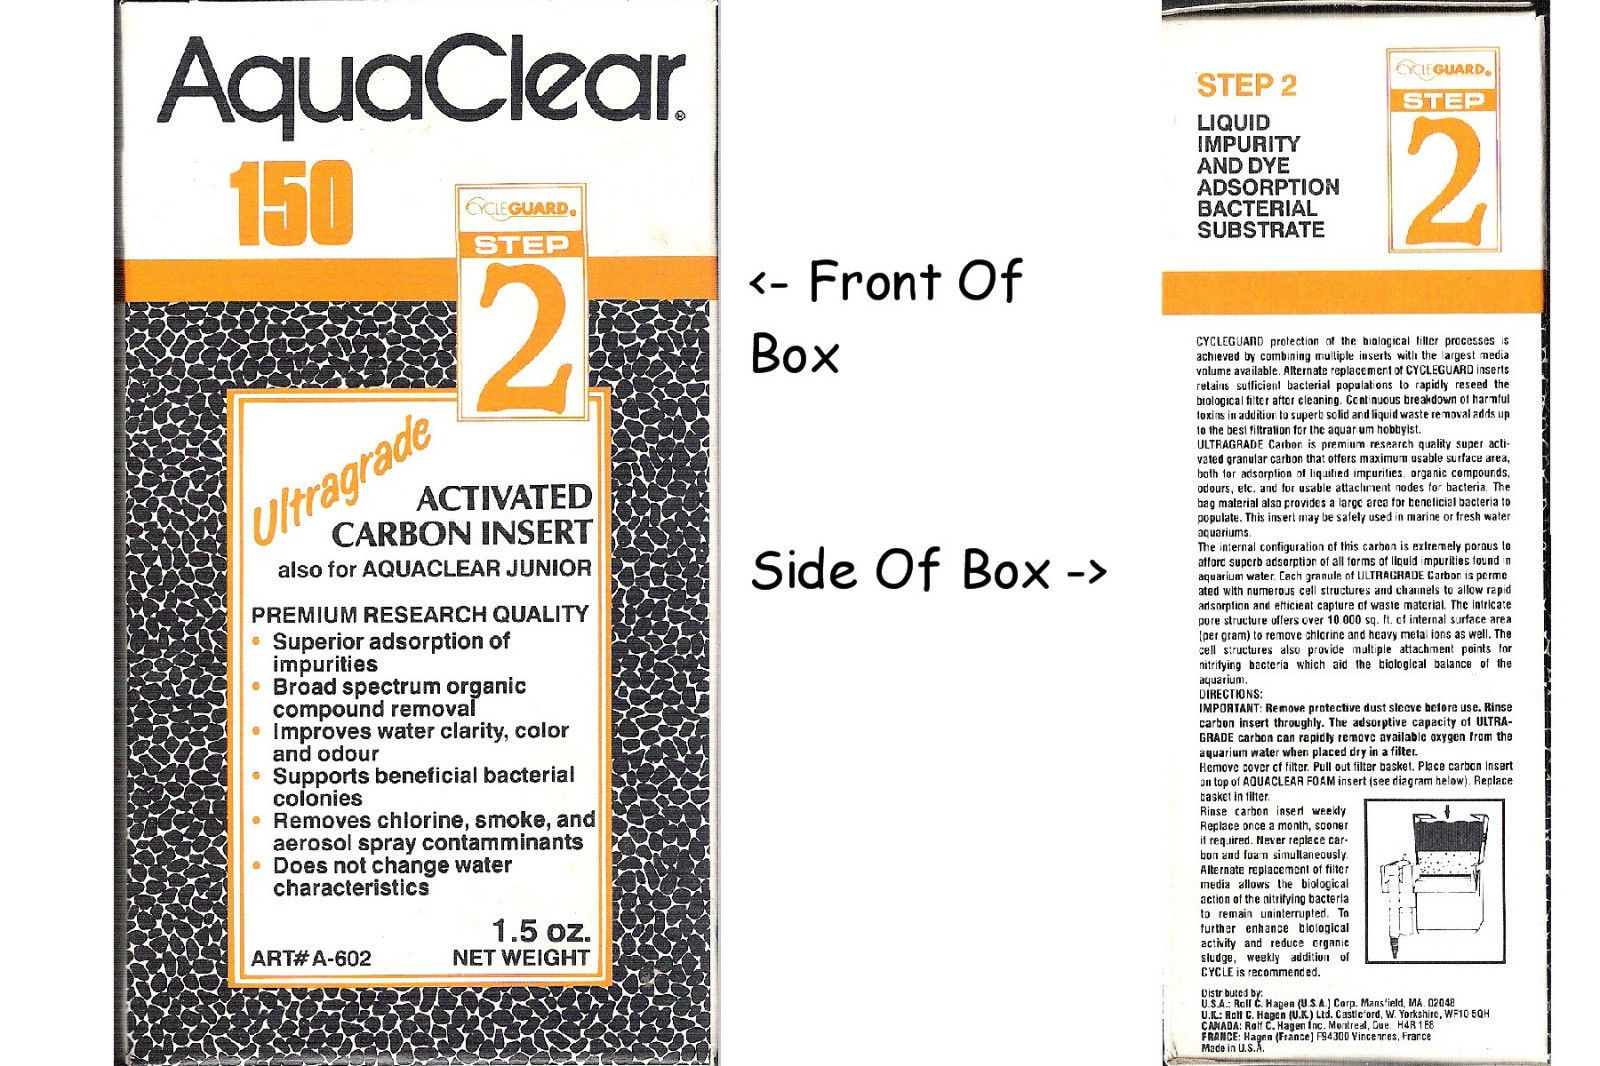 AquaClear 150 Step 2Ultragrade Activated Carbon Insert Also For Aquaclear Junior